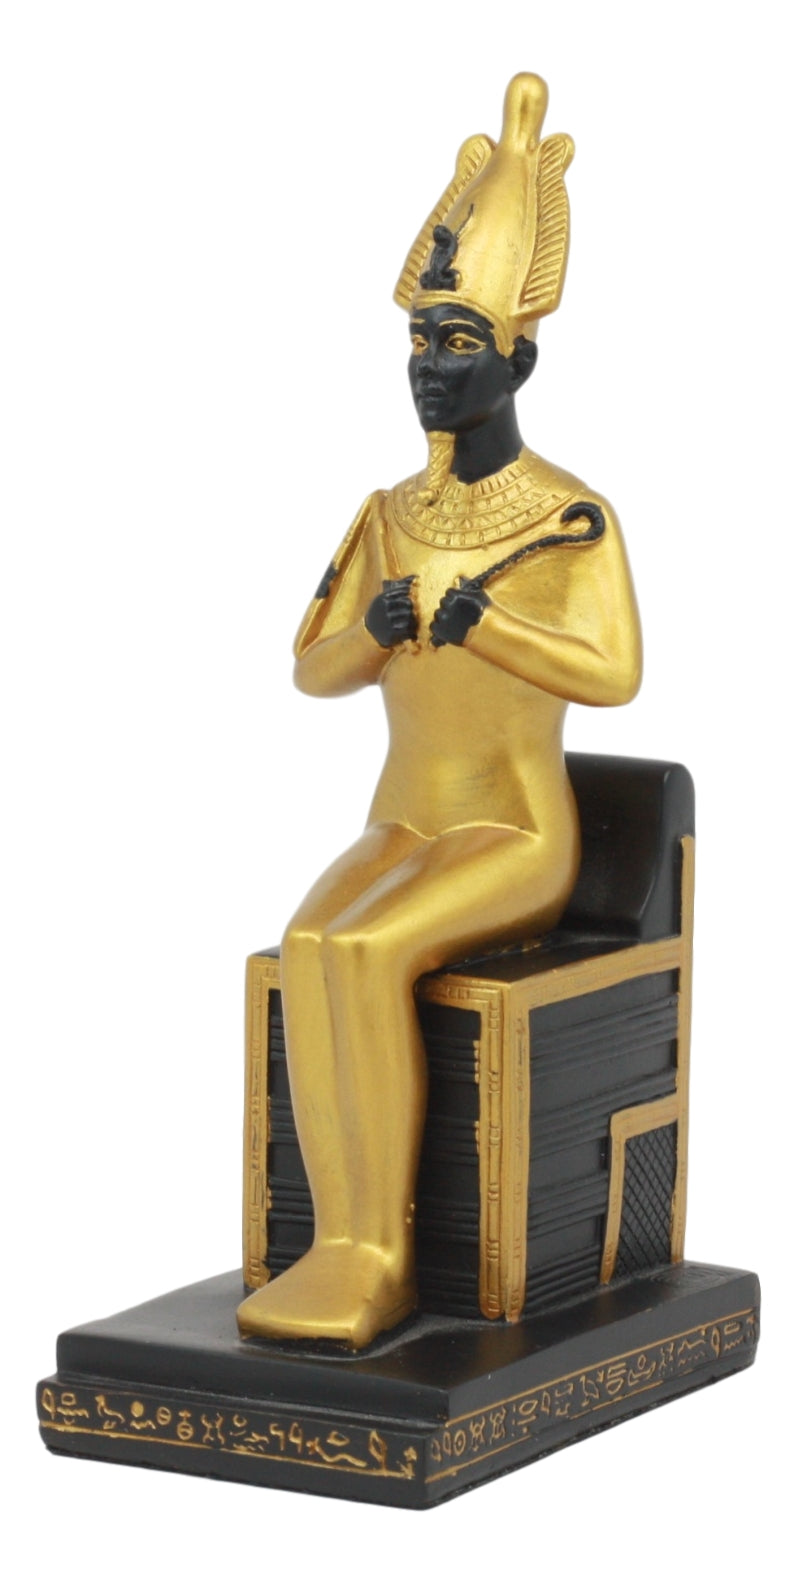 Ebros Classical Egyptian Gods and Goddesses Seated On Throne Statue Gods of Egypt Ruler of Mankind Decorative Figurine … (Osiris God of The Afterlife)